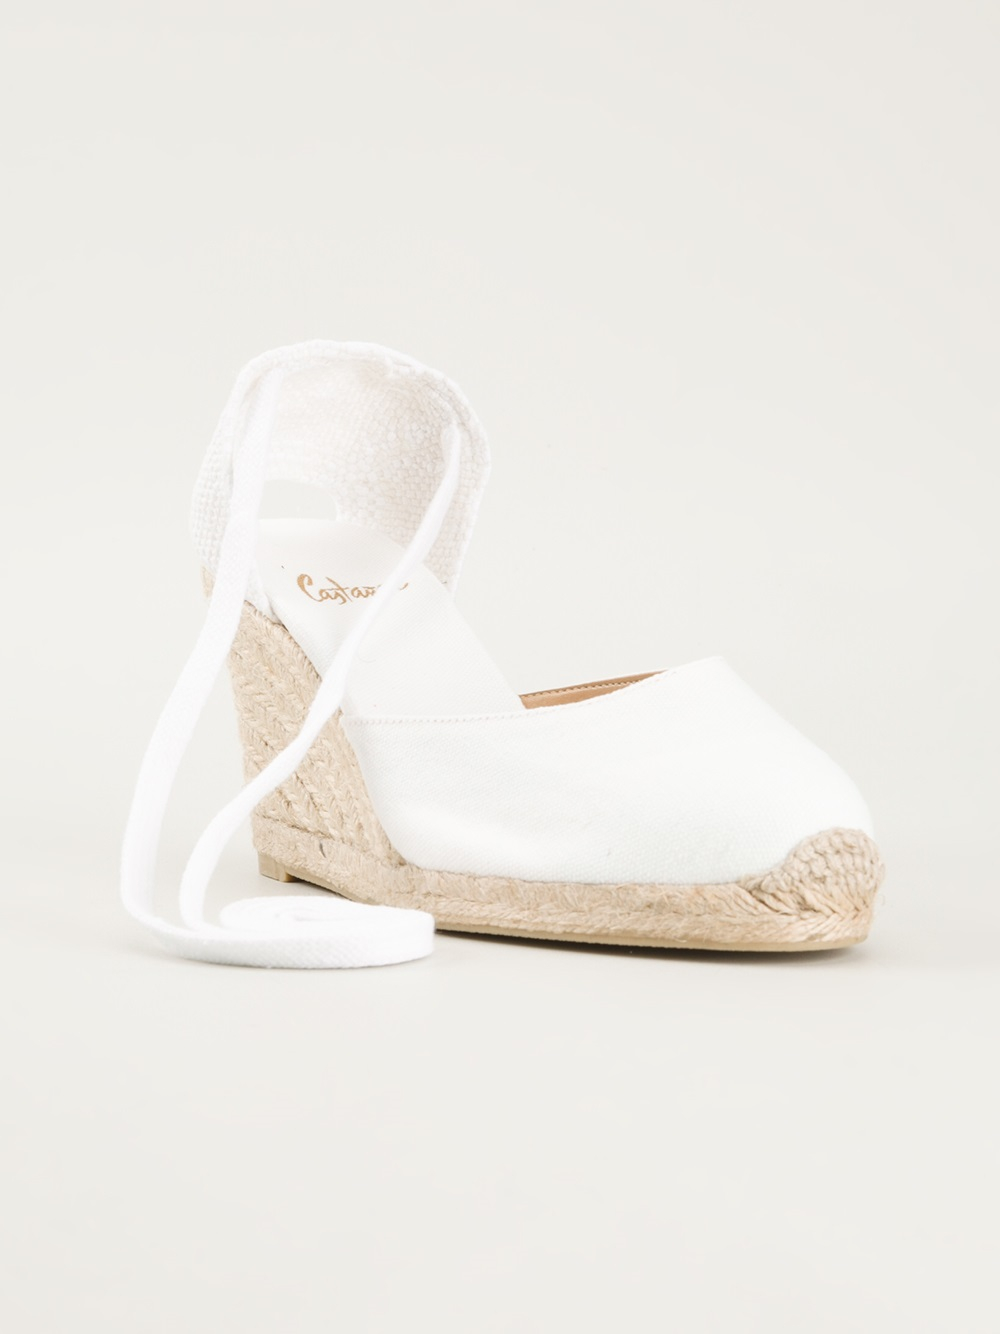 S Wedge Shoes